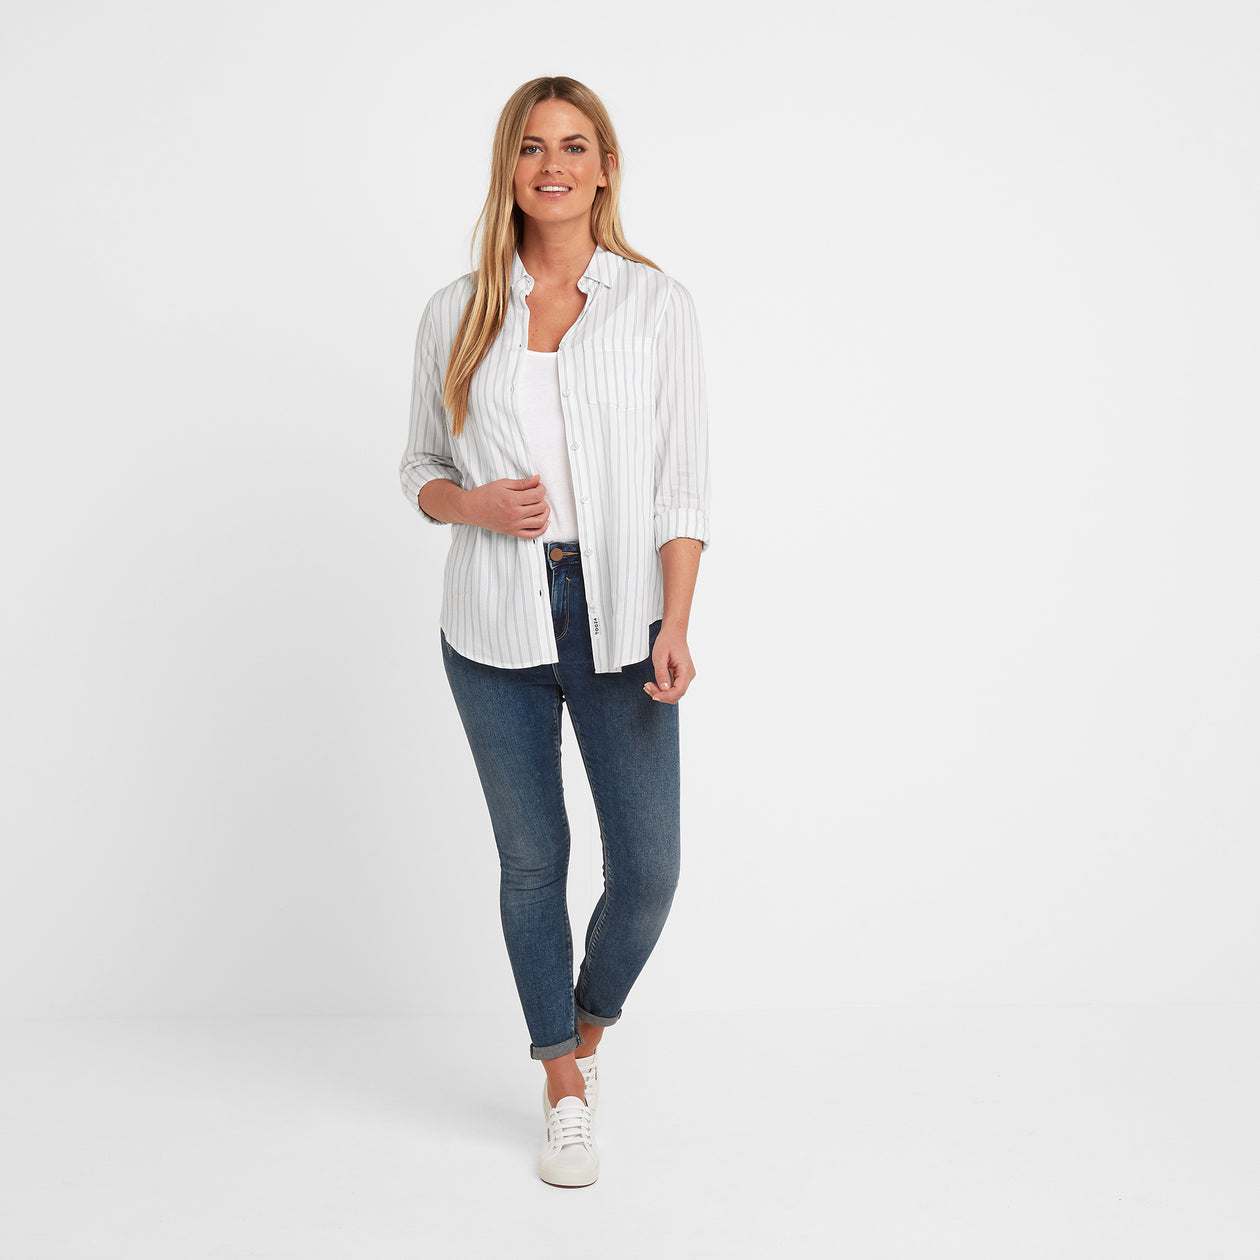 Harlow Womens Long Sleeve Shirt - White image 4